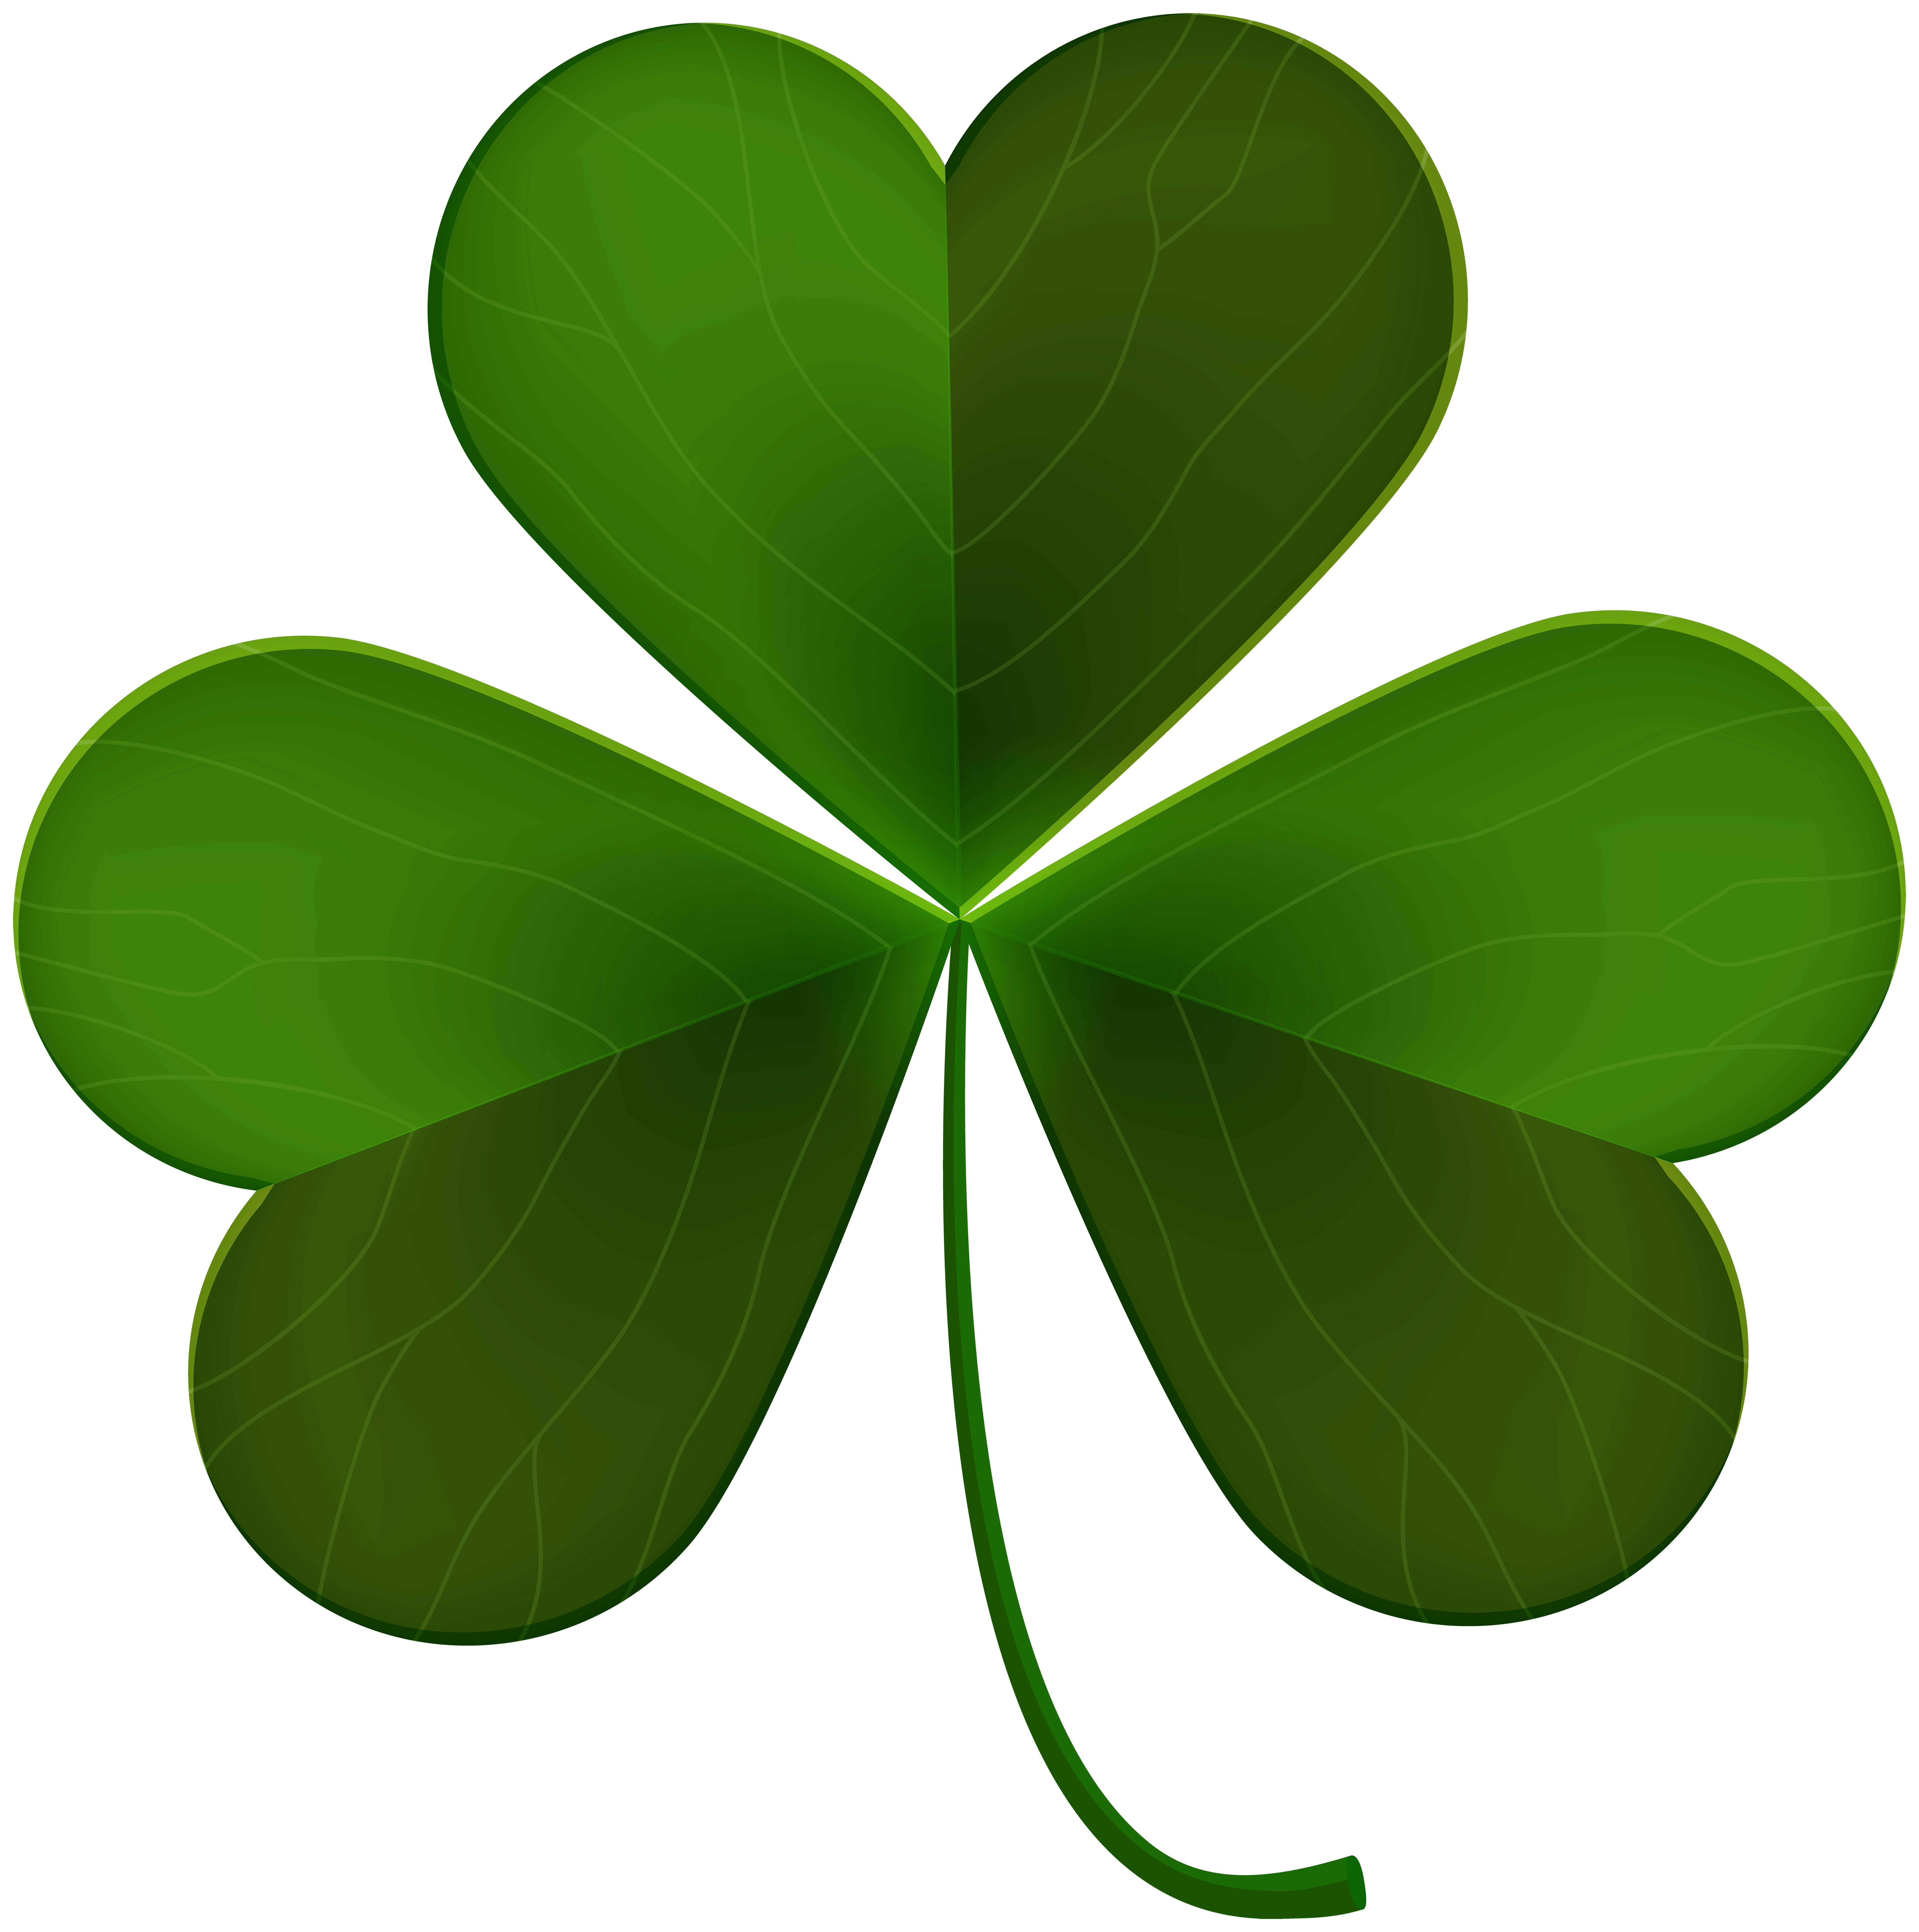 Png Of Shamrocks - Shamrock PNG Clip Art​ | Gallery Yopriceville - High-Quality ...